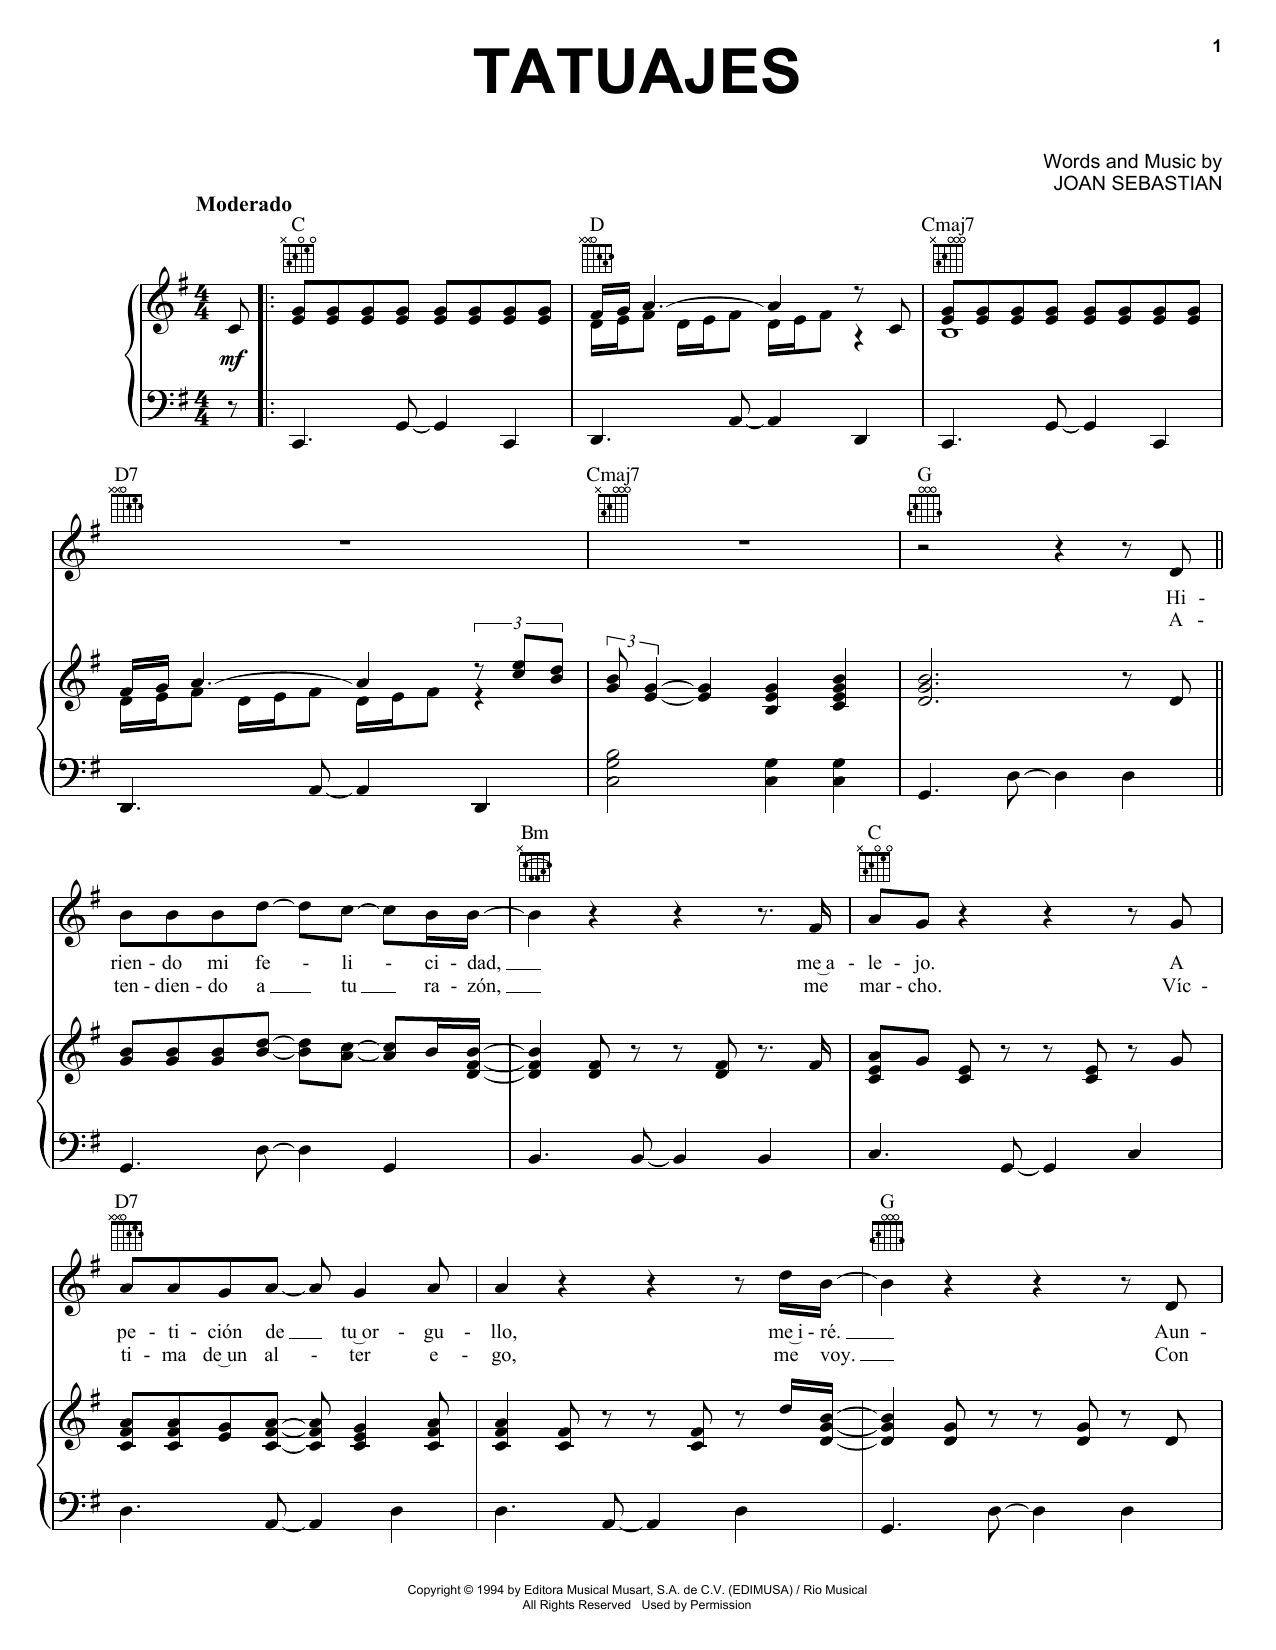 Acordes De Guitarra Para Música Cristiana Tatuajes By Joan Sebastian Piano Vocal Guitar Right Hand Melody Digital Sheet Music